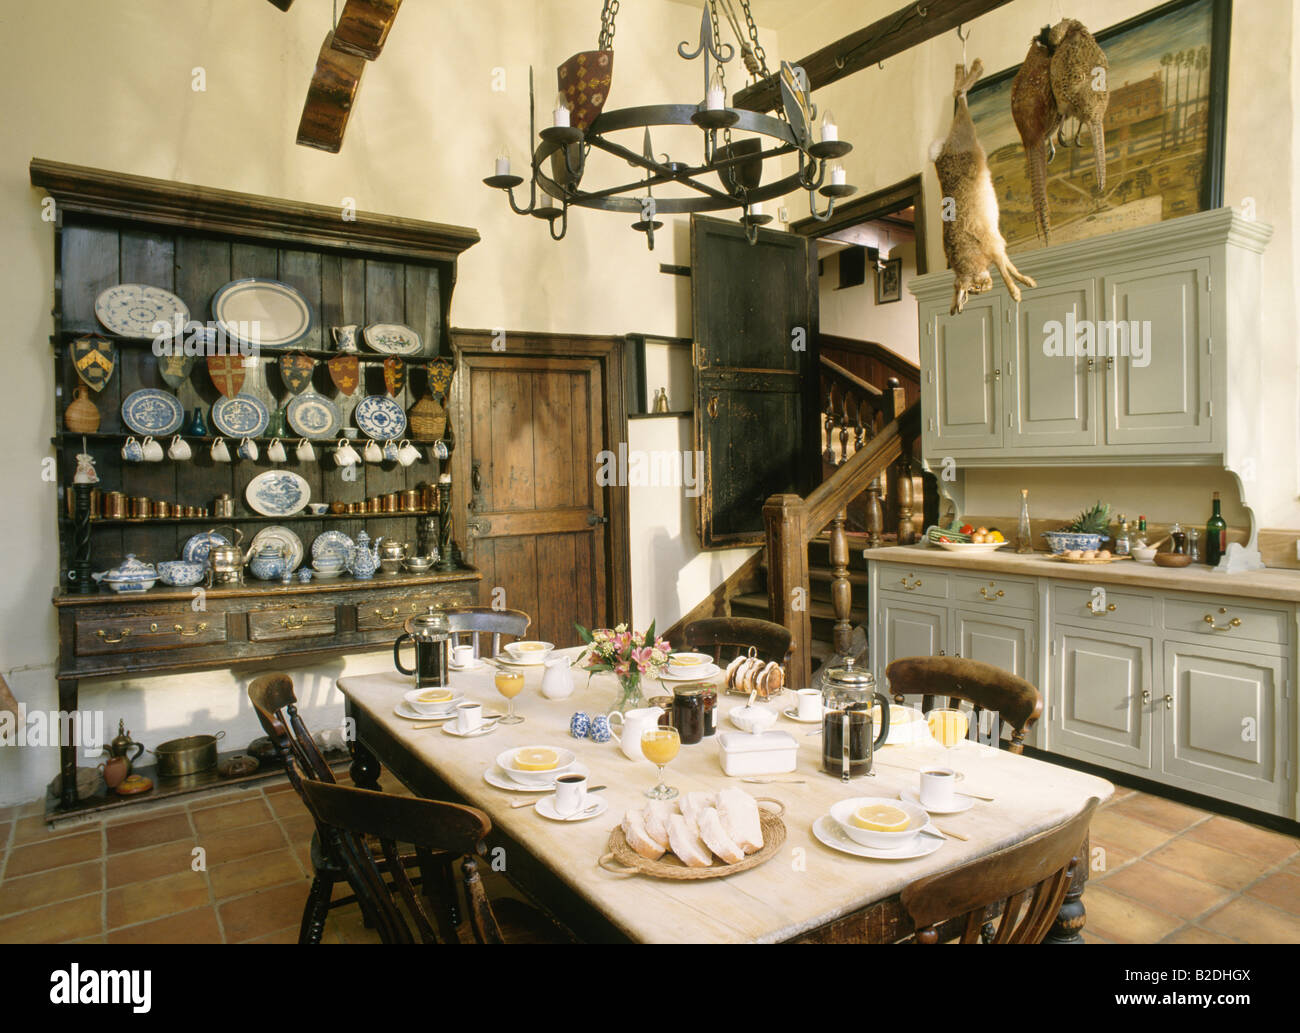 Table Set For Breakfast In Large Old Fashioned Kitchen Stock Photo 18738858 Alamy